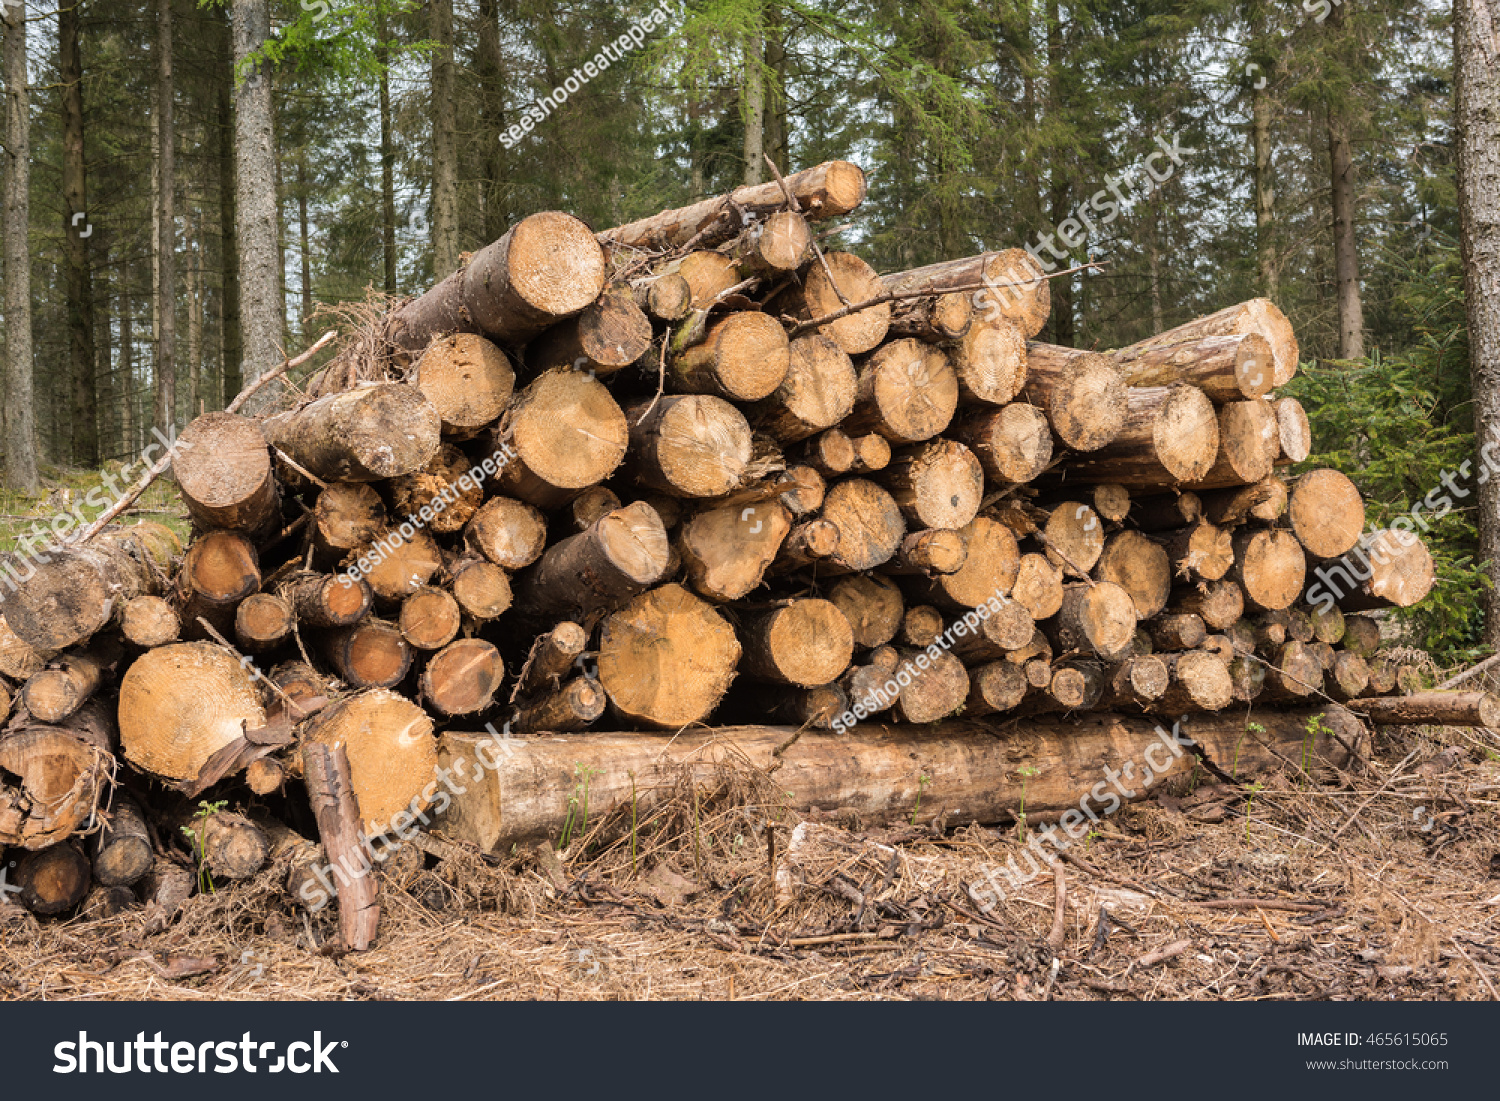 Pile Of Timber : Stock pile timber chopped down trees photo